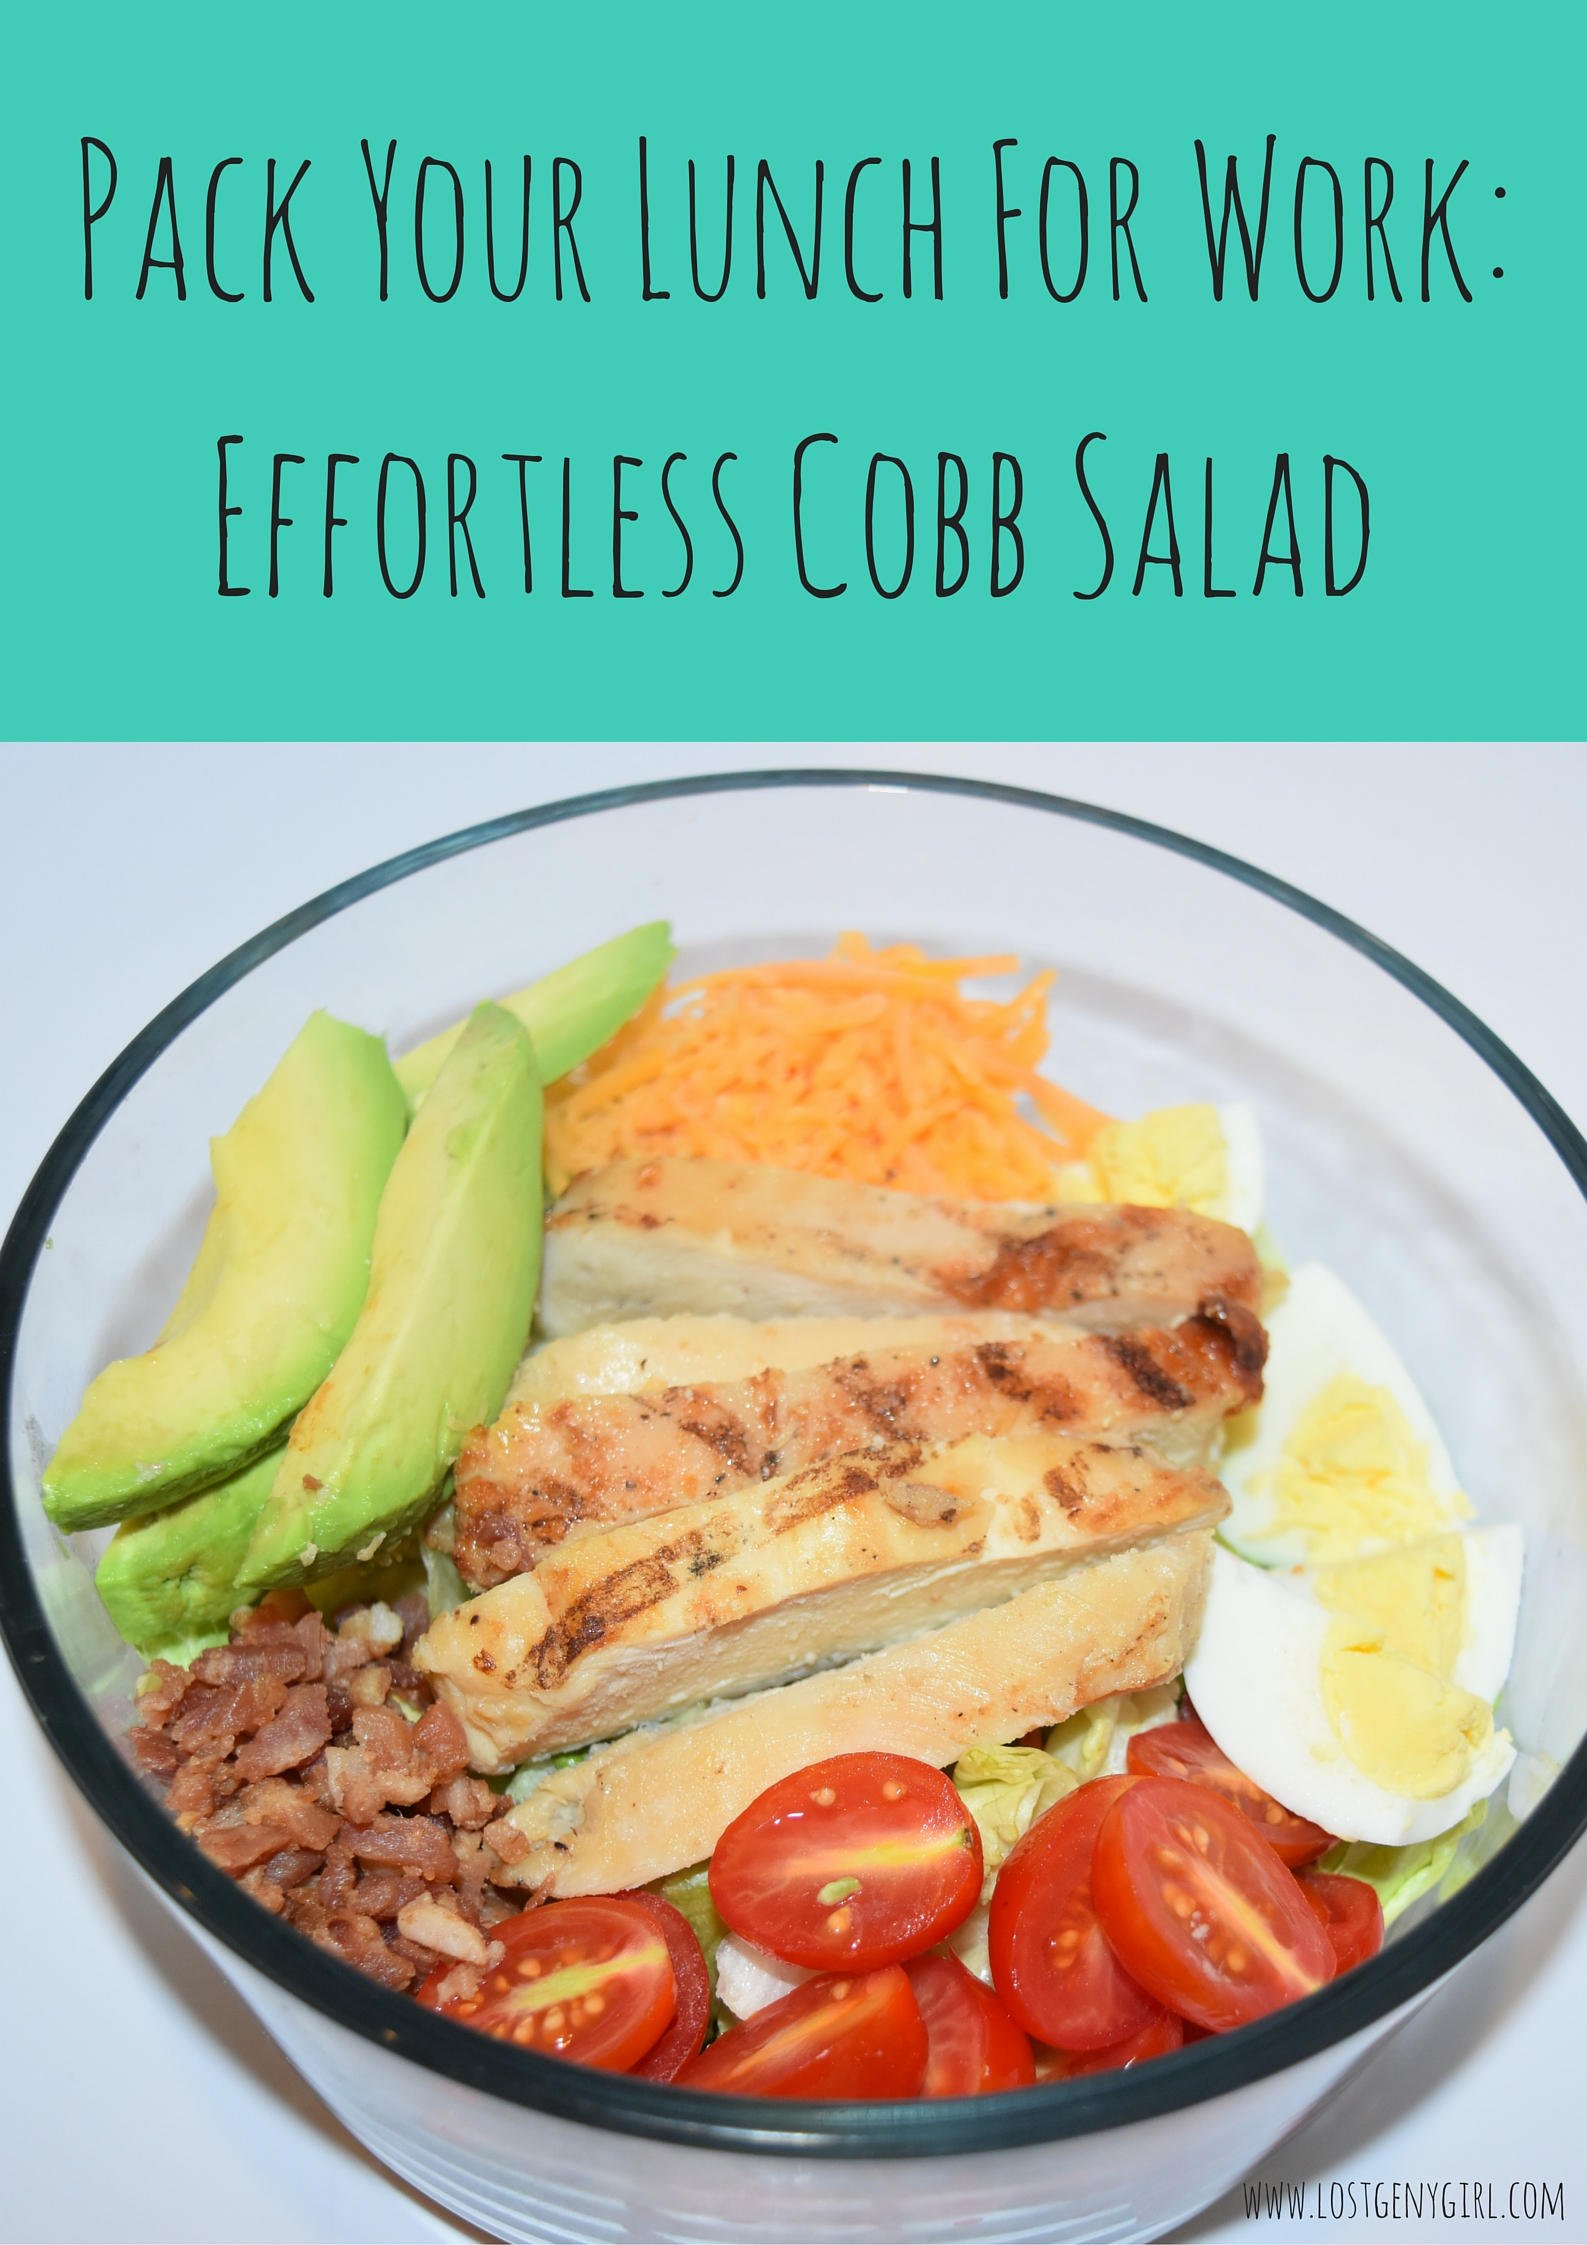 #ad Pack Your Lunch for Work: Effortless Cobb Salad